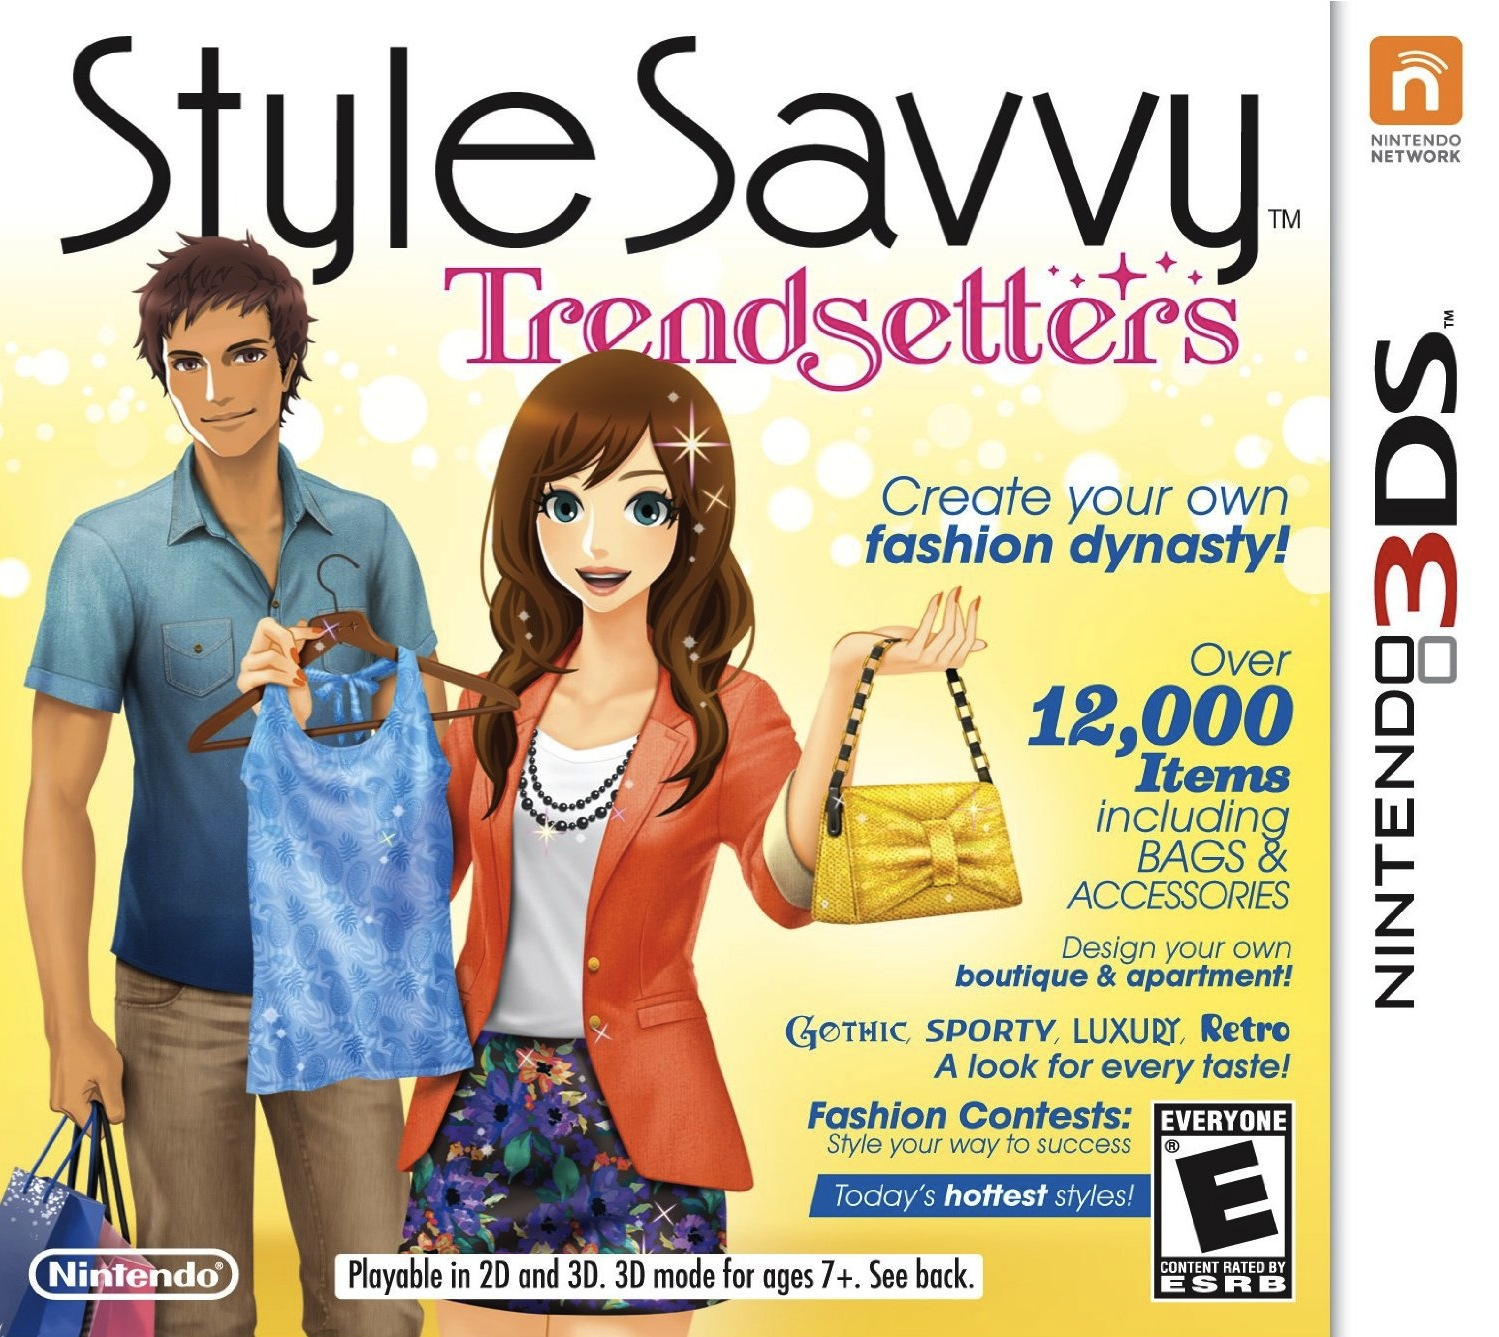 Image Style Savvy Trendsetters Na Jpg The Nintendo Wiki Wii Nintendo Ds And All Things